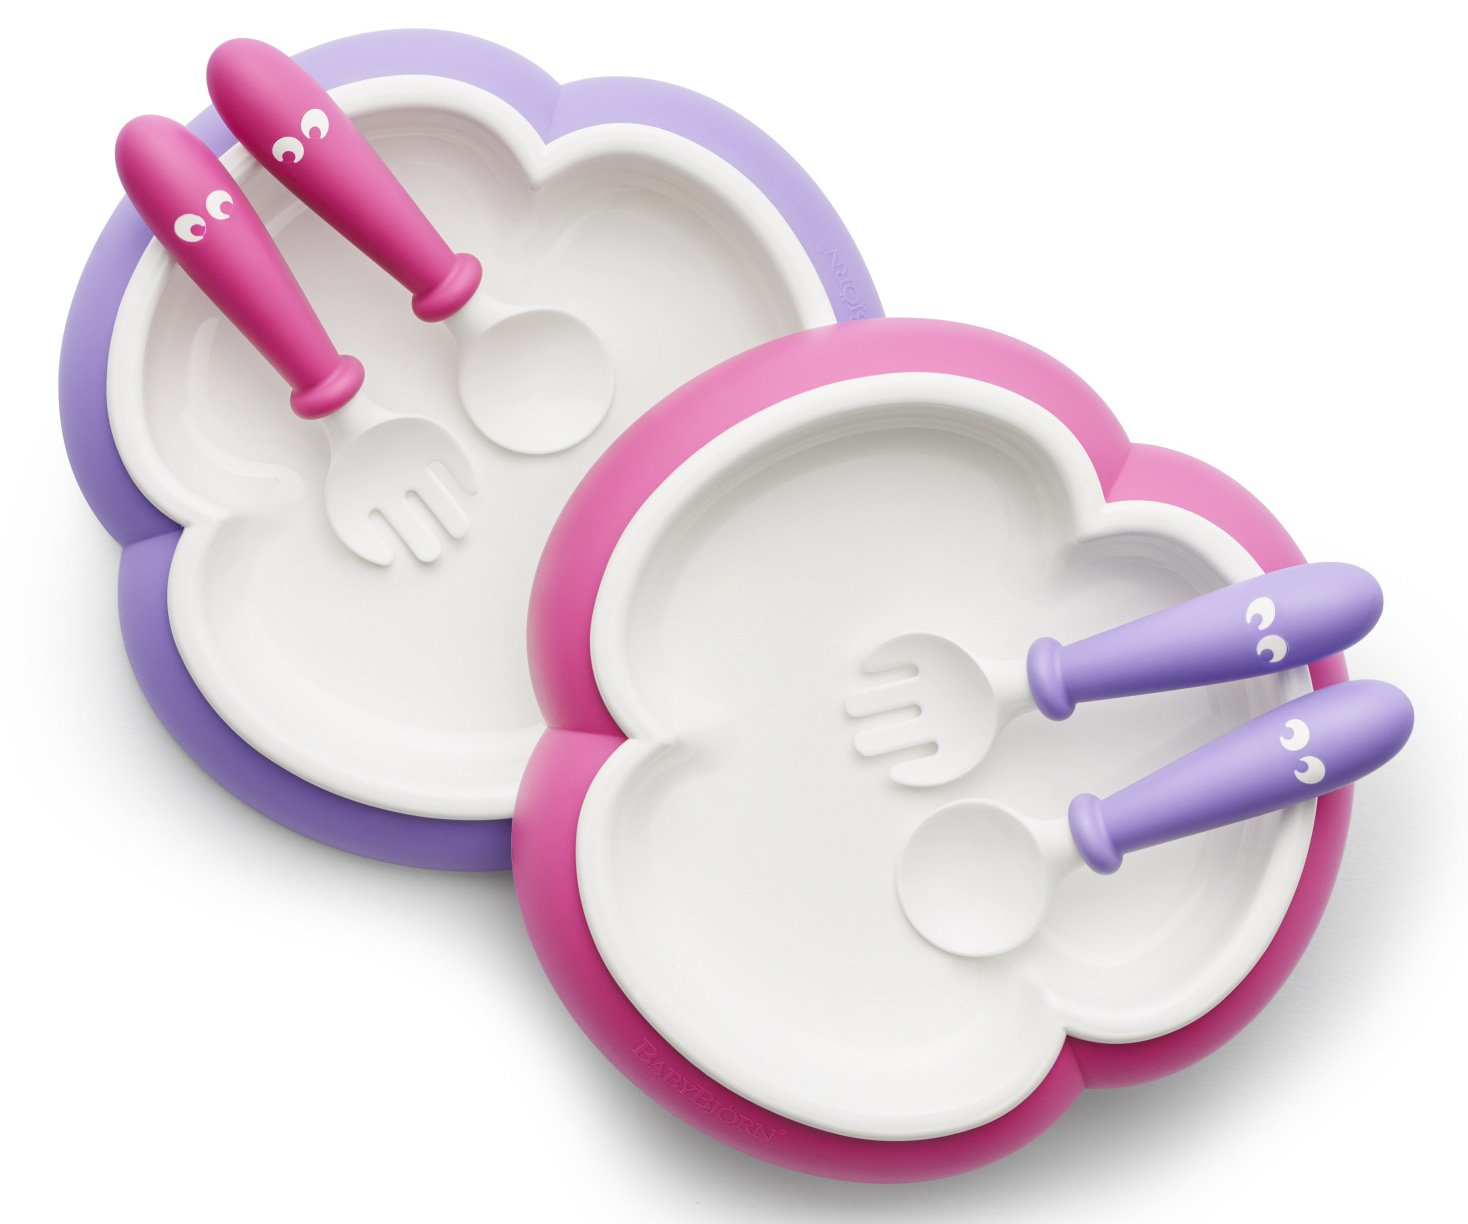 BABYBJORN Baby Plate, Spoon and Fork - Pink/Purple, 2-pack 074046US